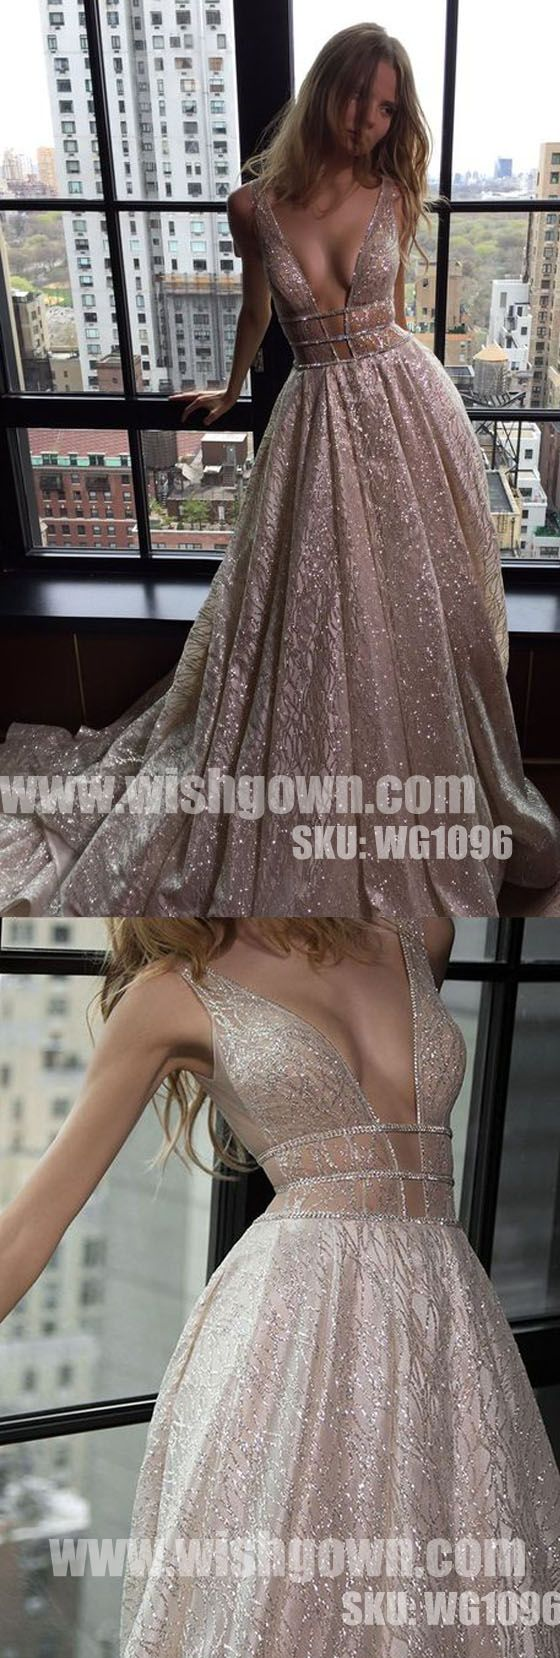 Sexy Deep V Neck Sparkly Popular Evening Formal Lo… -  Prom shopping is alive and well on Pinterest. Compare prices for this @ Wrhel.com before you commit to buy. #Prom